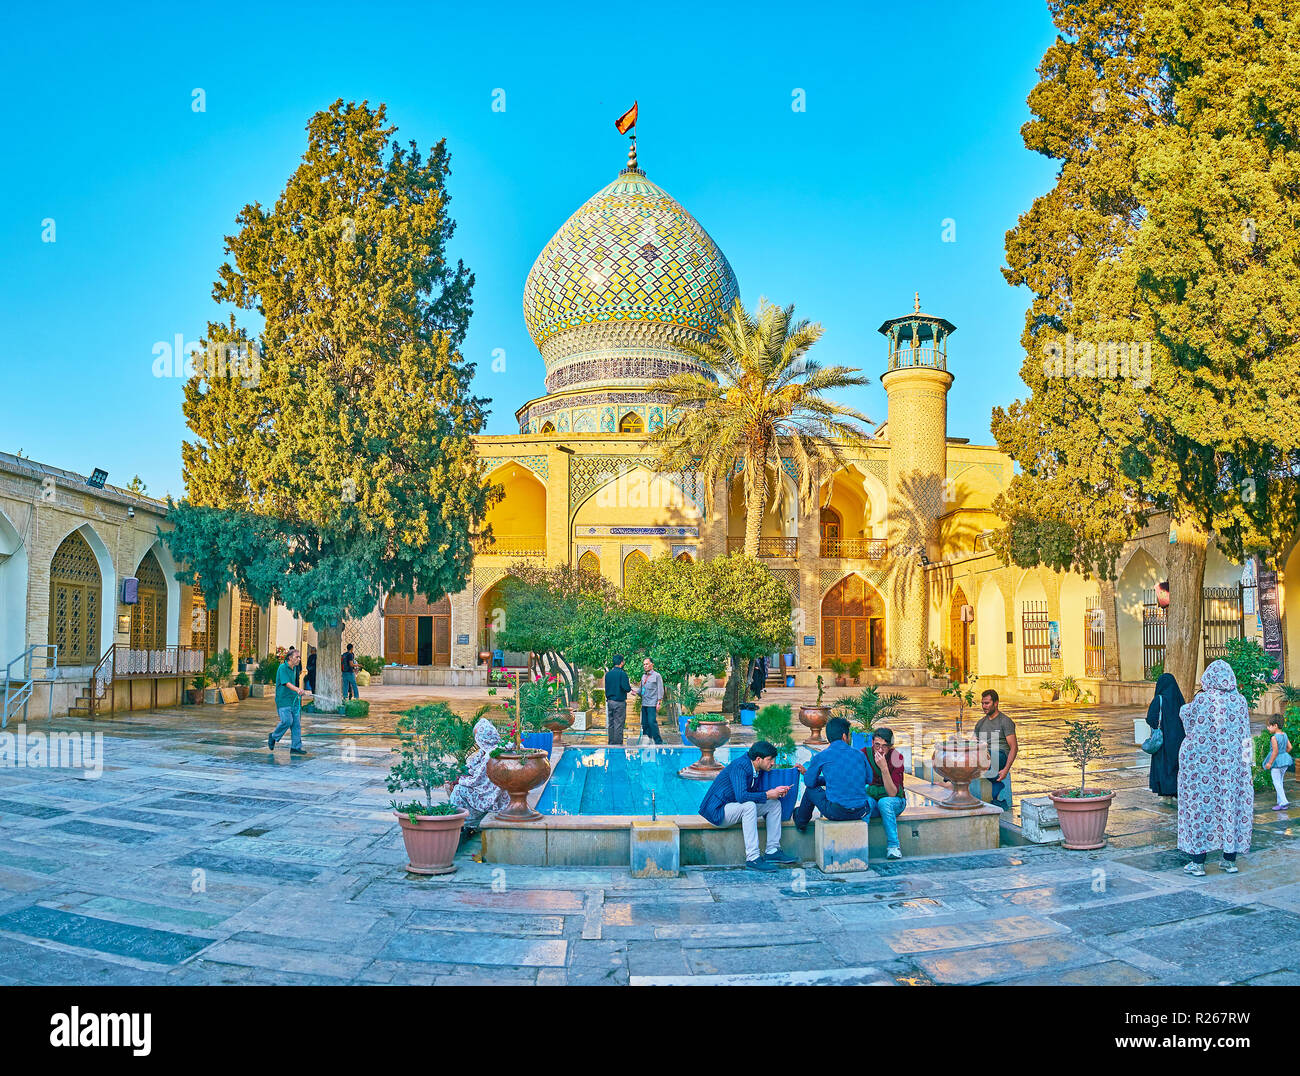 SHIRAZ, IRAN - OCTOBER 12, 2017: The courtyard of Imamzadeh Ali Ibn Hamzeh Holy Shrine with small garden, fountain and beautiful Persian architecture, - Stock Image